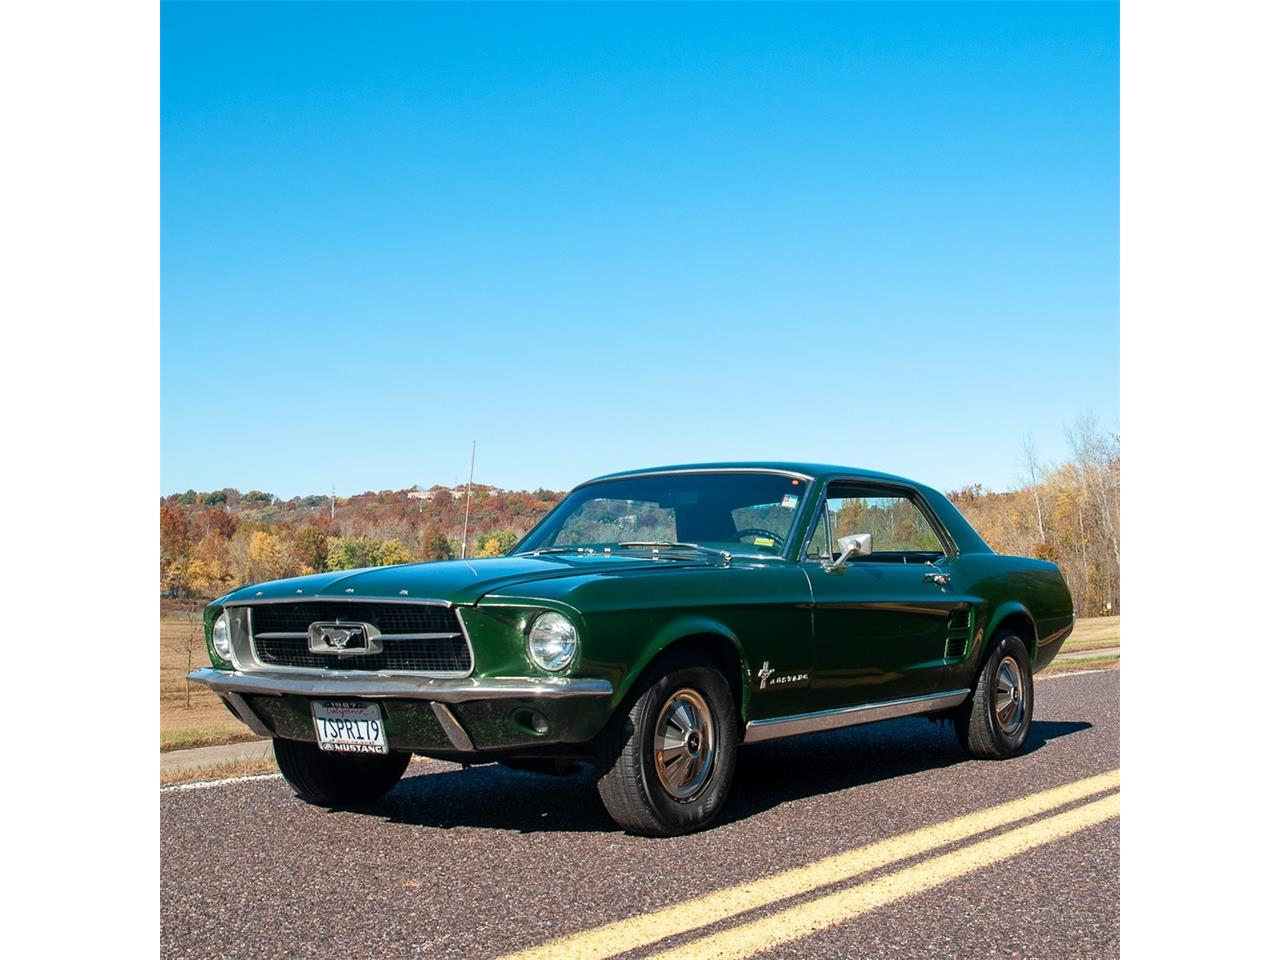 Large Picture of Classic '67 Ford Mustang located in St. Louis Missouri - $17,900.00 - OWD0